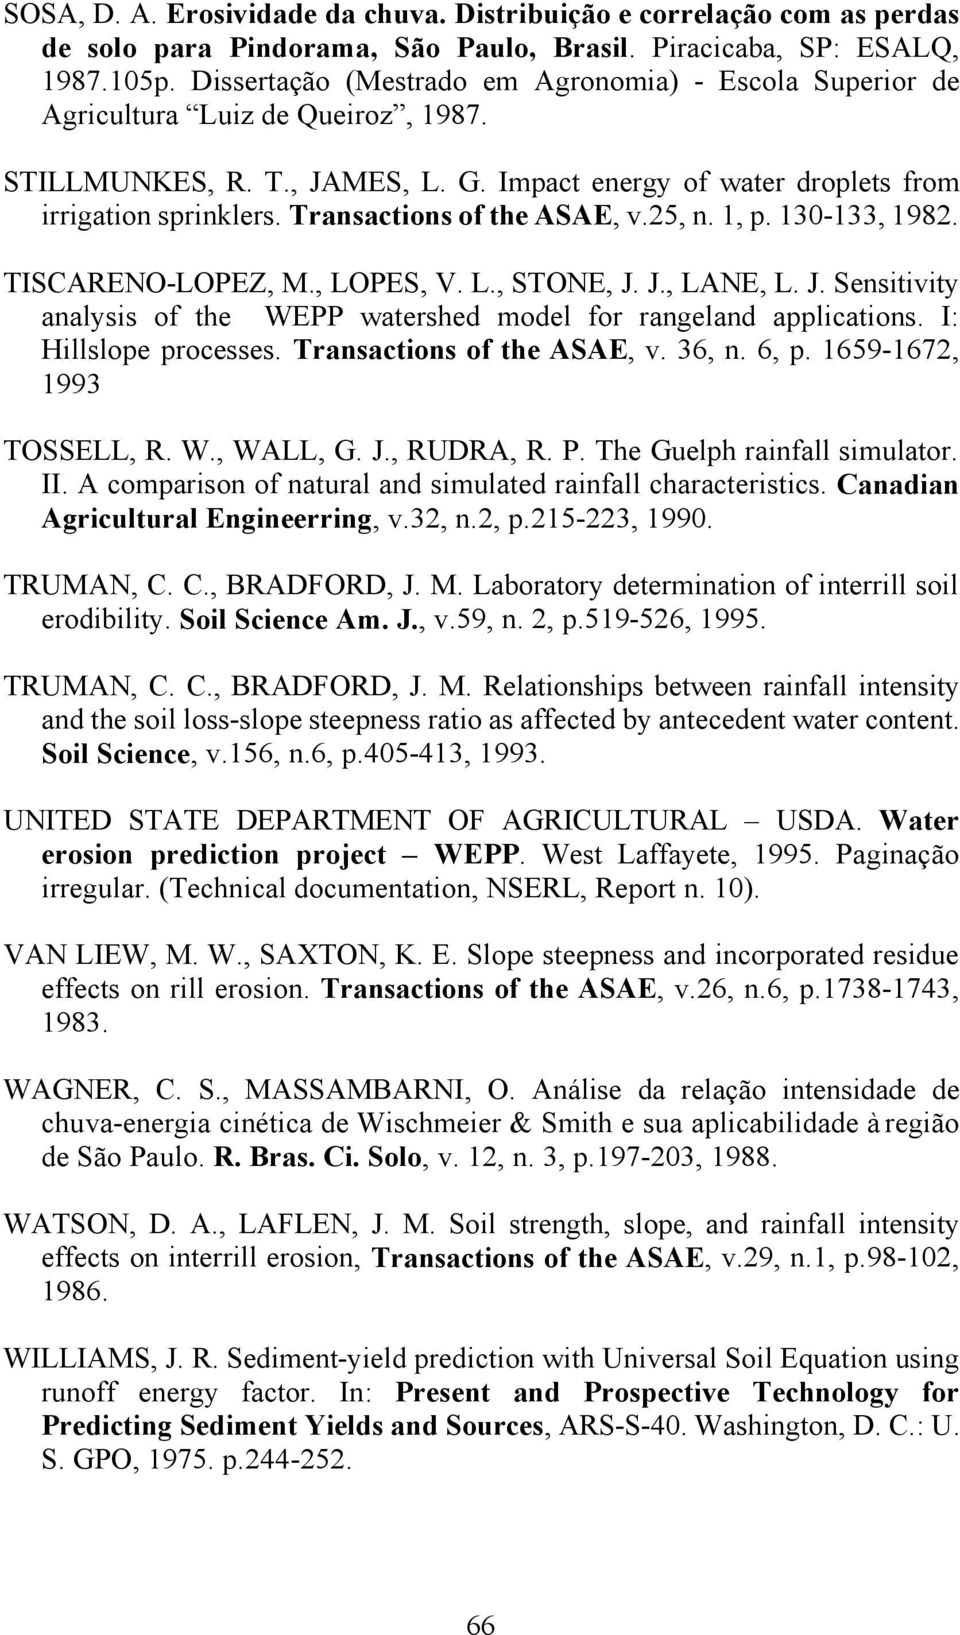 Transactions of the ASAE, v.25, n. 1, p. 130-133, 1982. TISCARENO-LOPEZ, M., LOPES, V. L., STONE, J. J., LANE, L. J. Sensitivity analysis of the WEPP watershed model for rangeland applications.